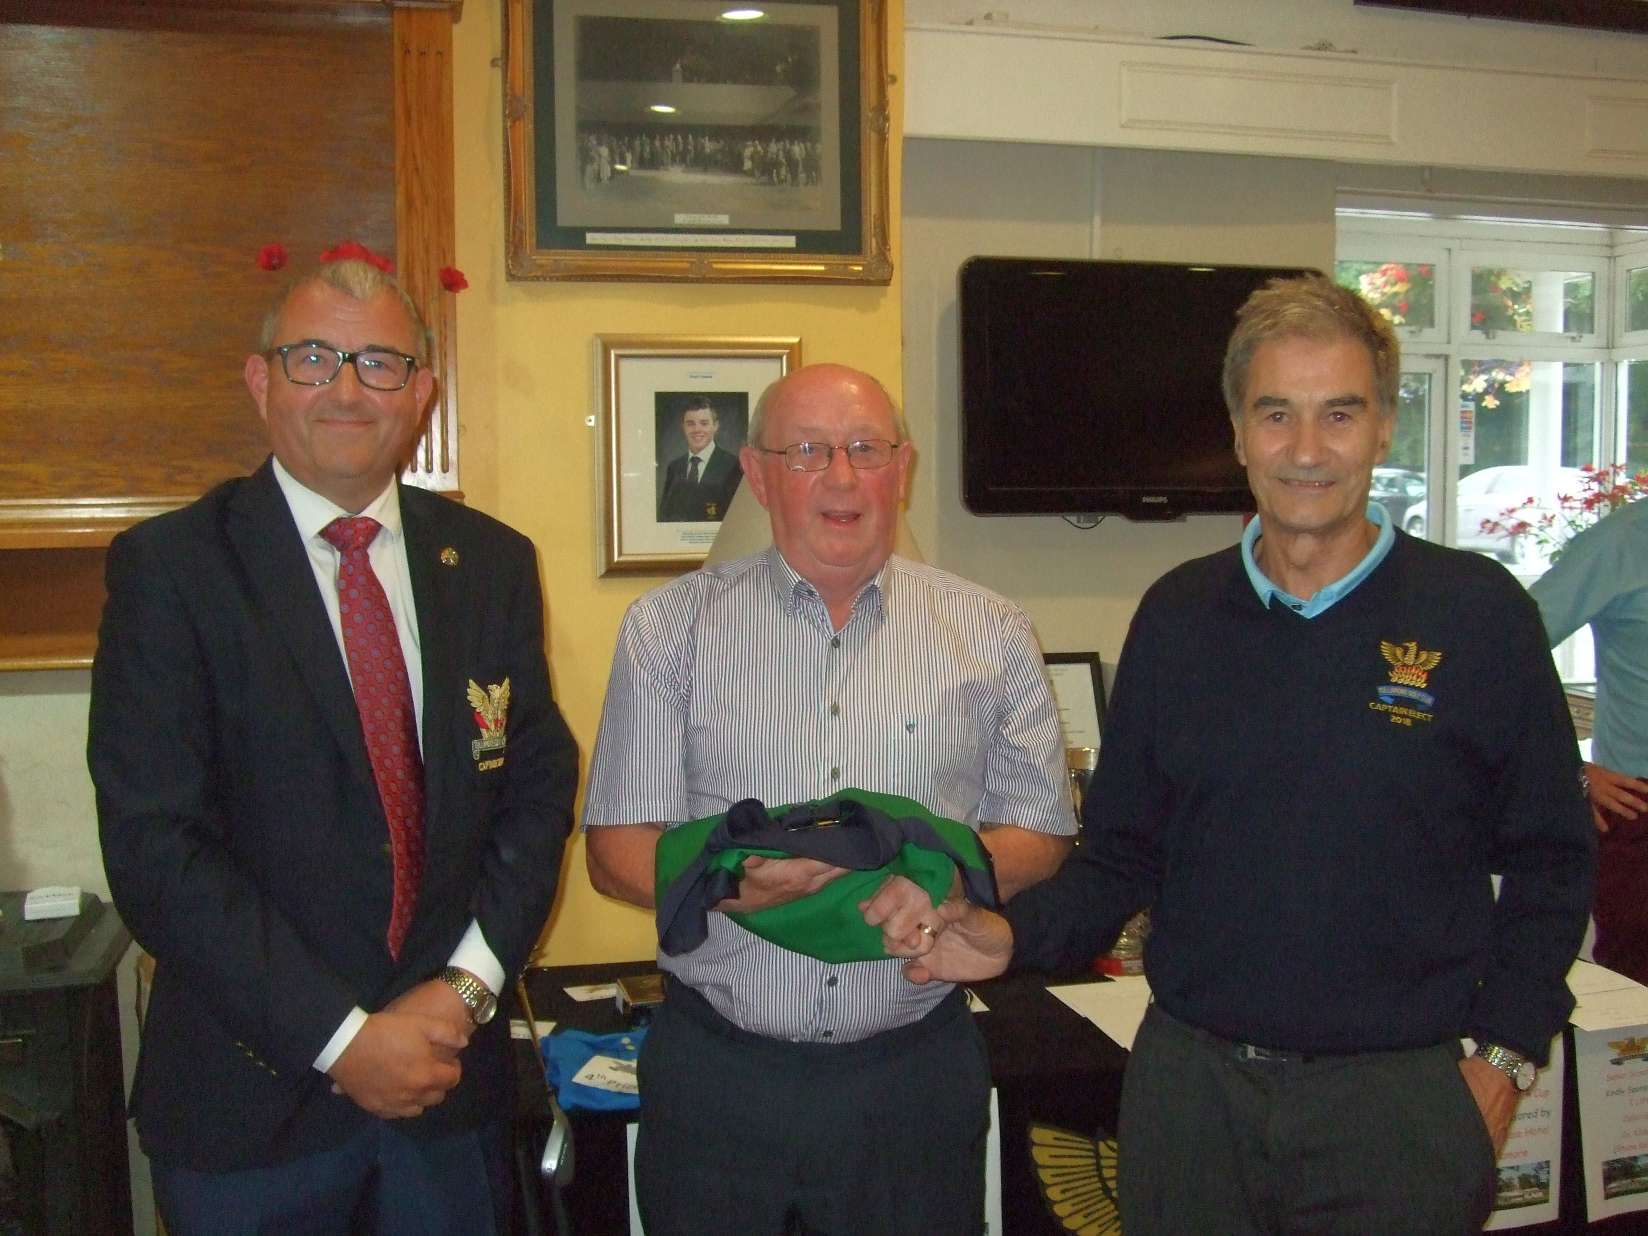 Mick Fox 3rd in Captain Elects Pat Corcoran's prize with Brian Gunning, Captain and Pat Corcoran Captain-elect